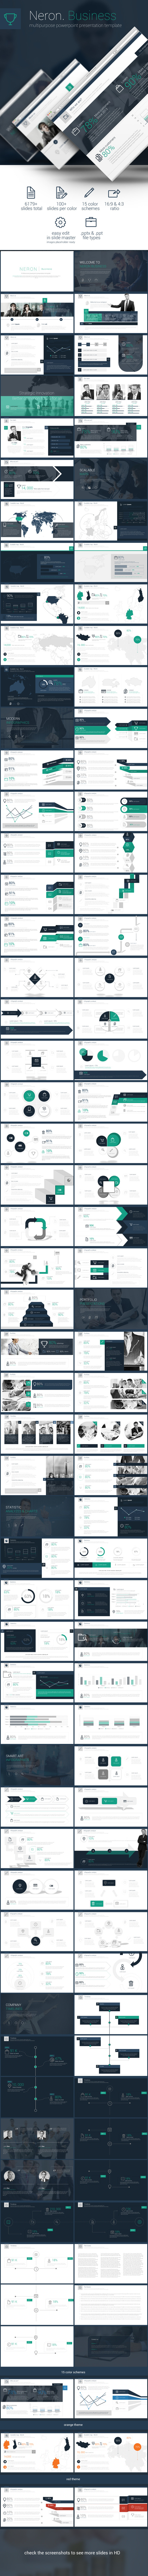 GraphicRiver Neron Powerpoint Presenatation Template 10368215